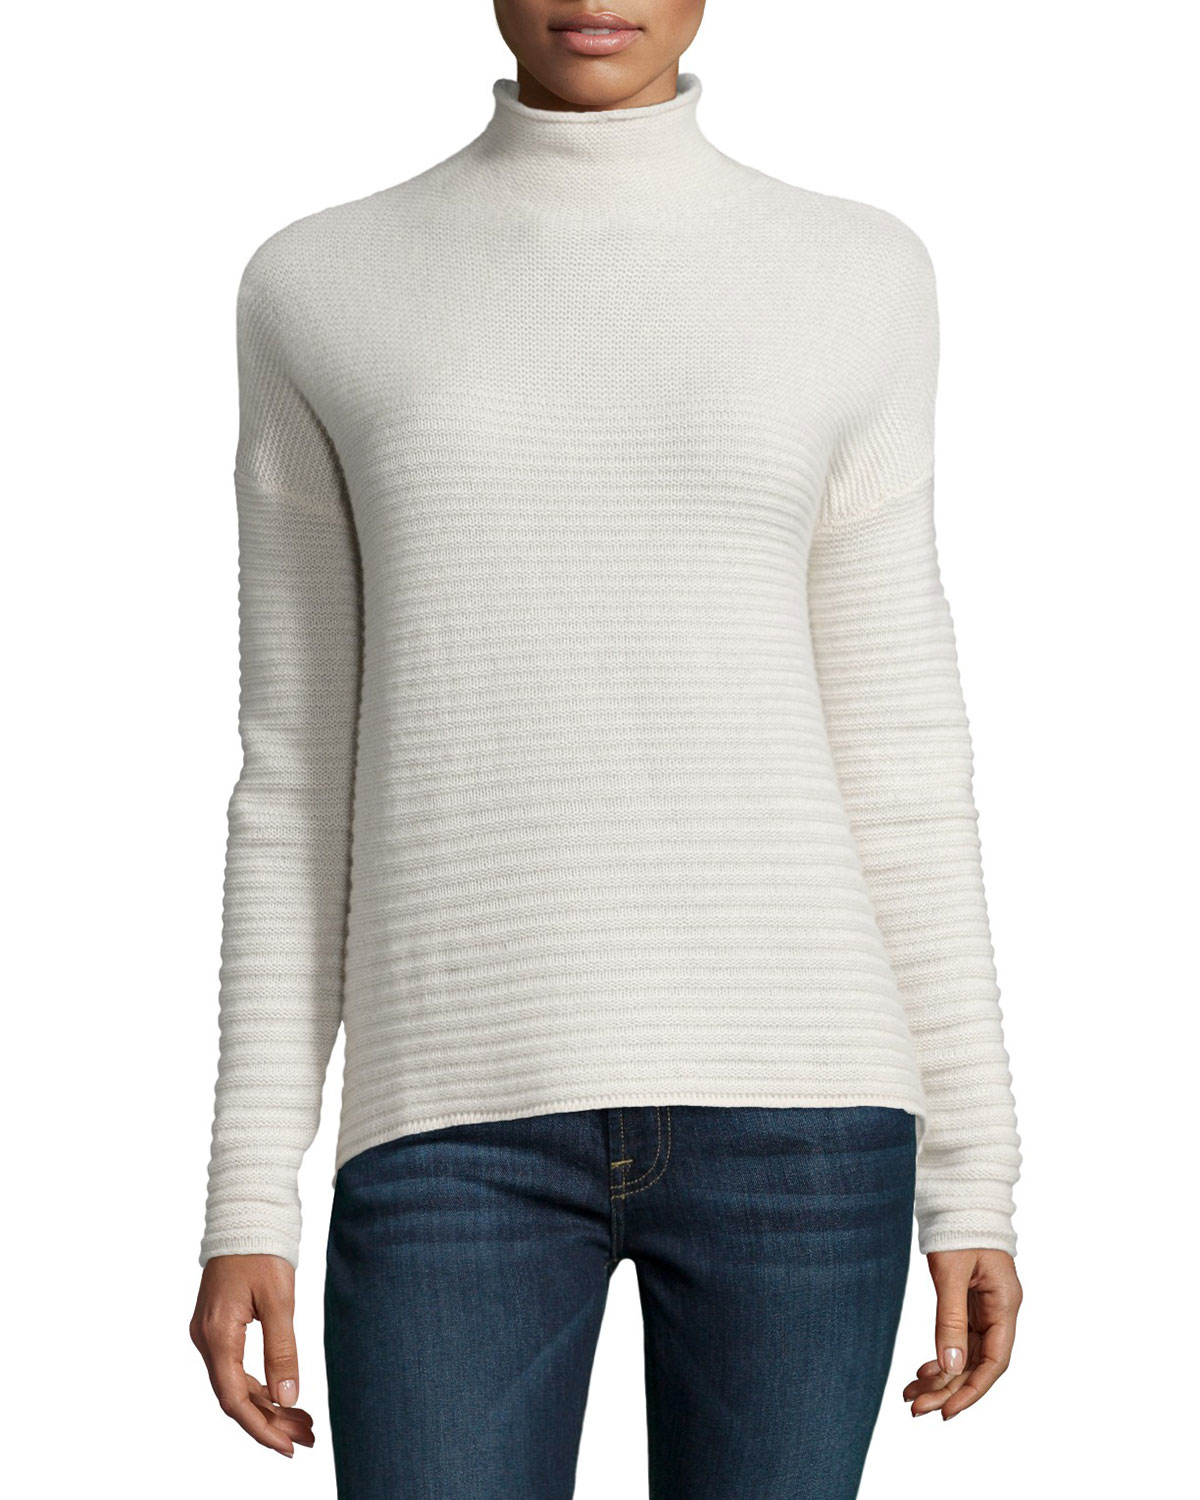 360cashmere Ribbed Cashmere Mock Turtleneck Sweater in White | Lyst